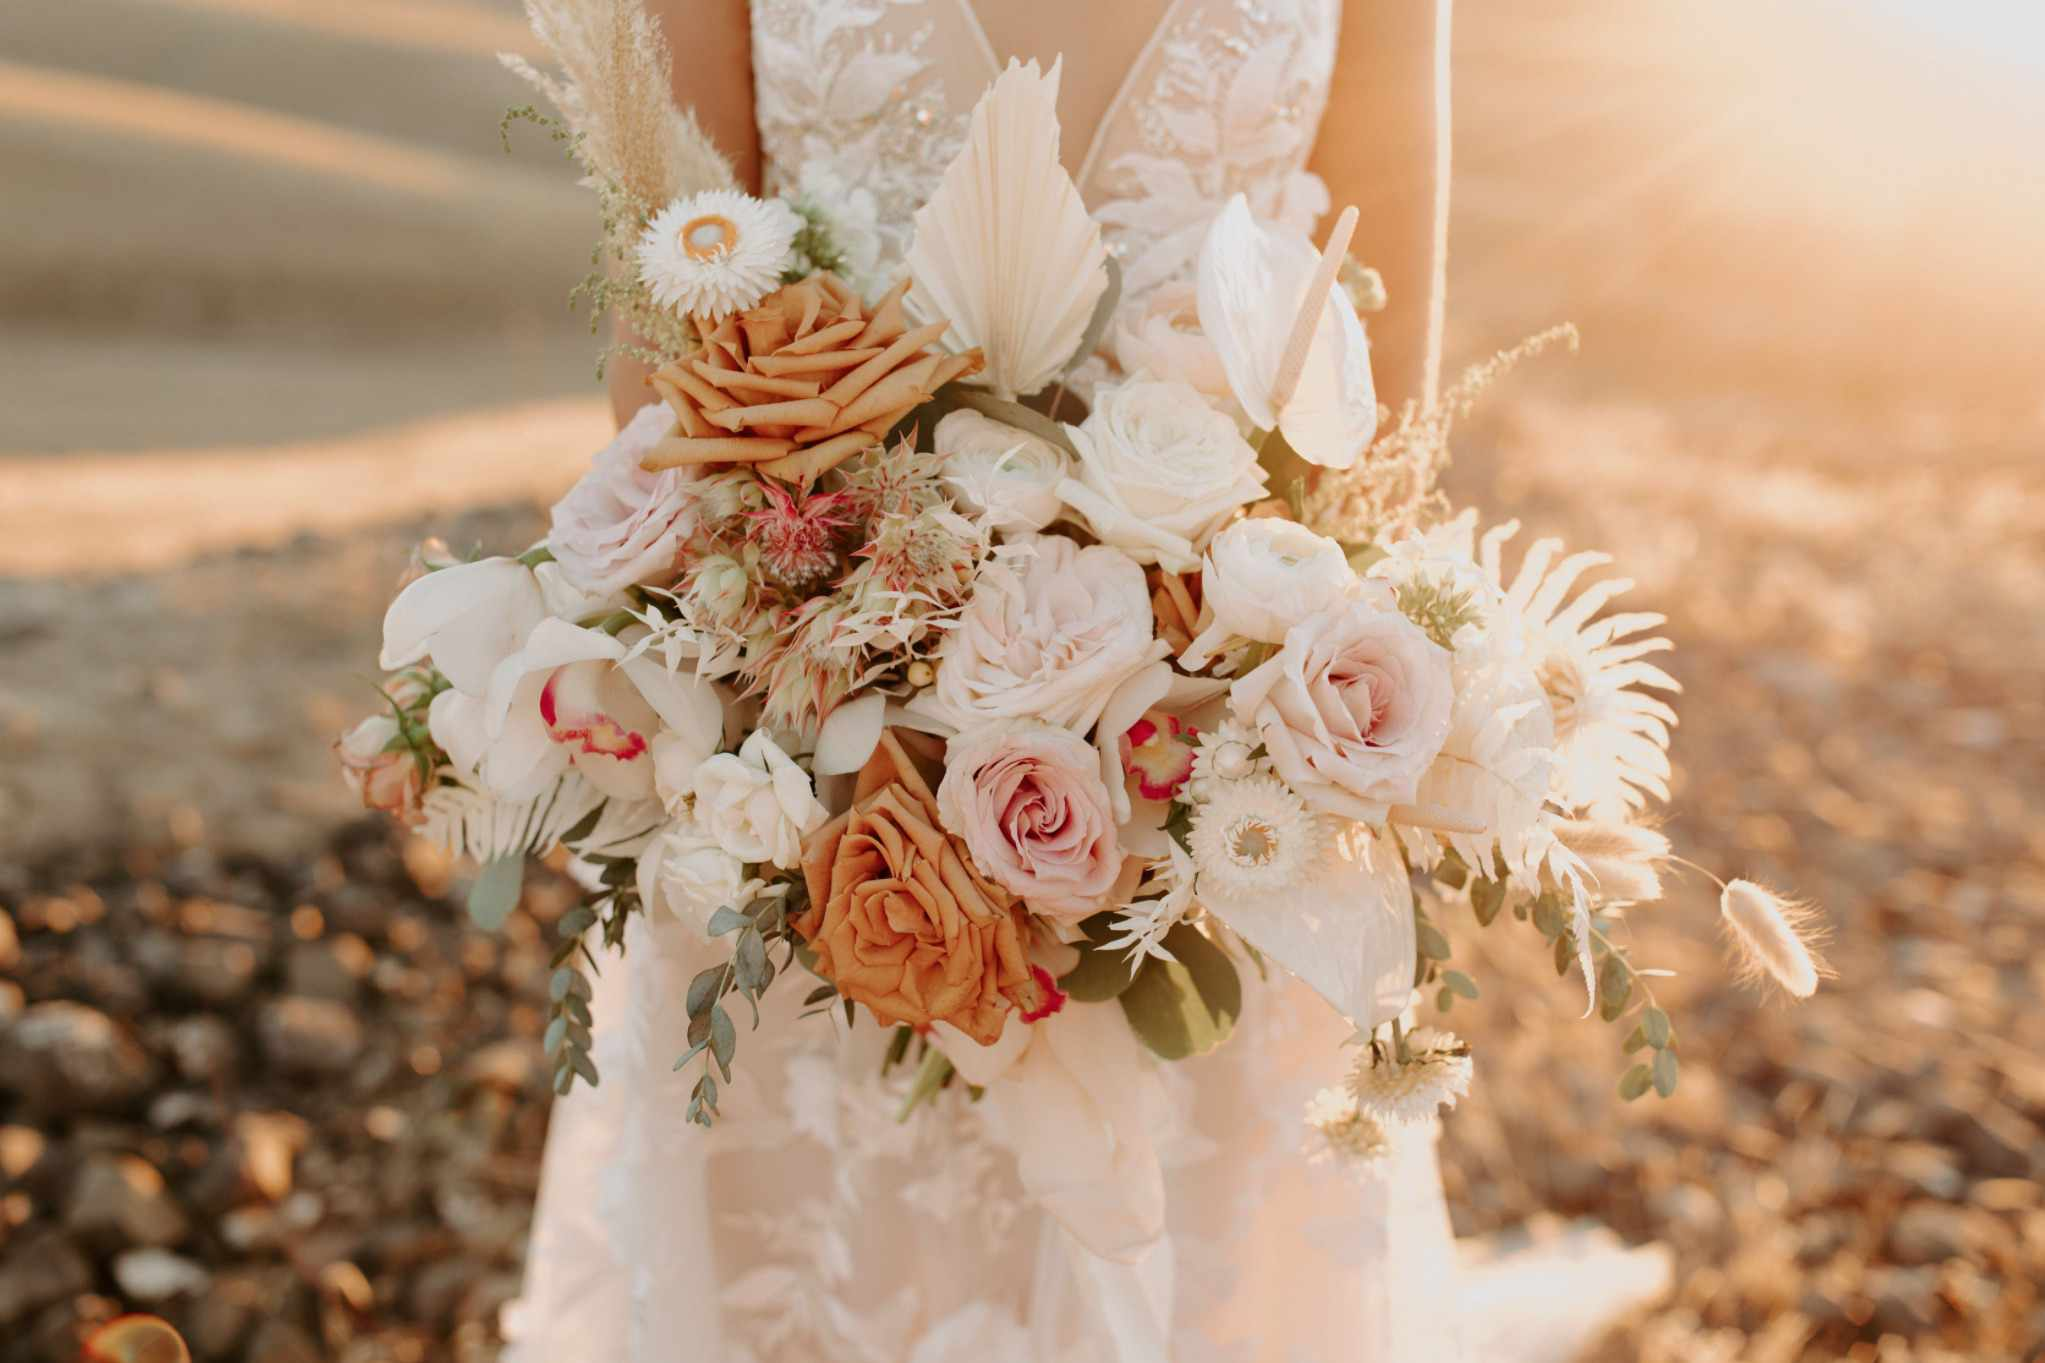 Bride holding bouquet of of white, pink and tan roses mixed with sprigs of greenery and pampas grass